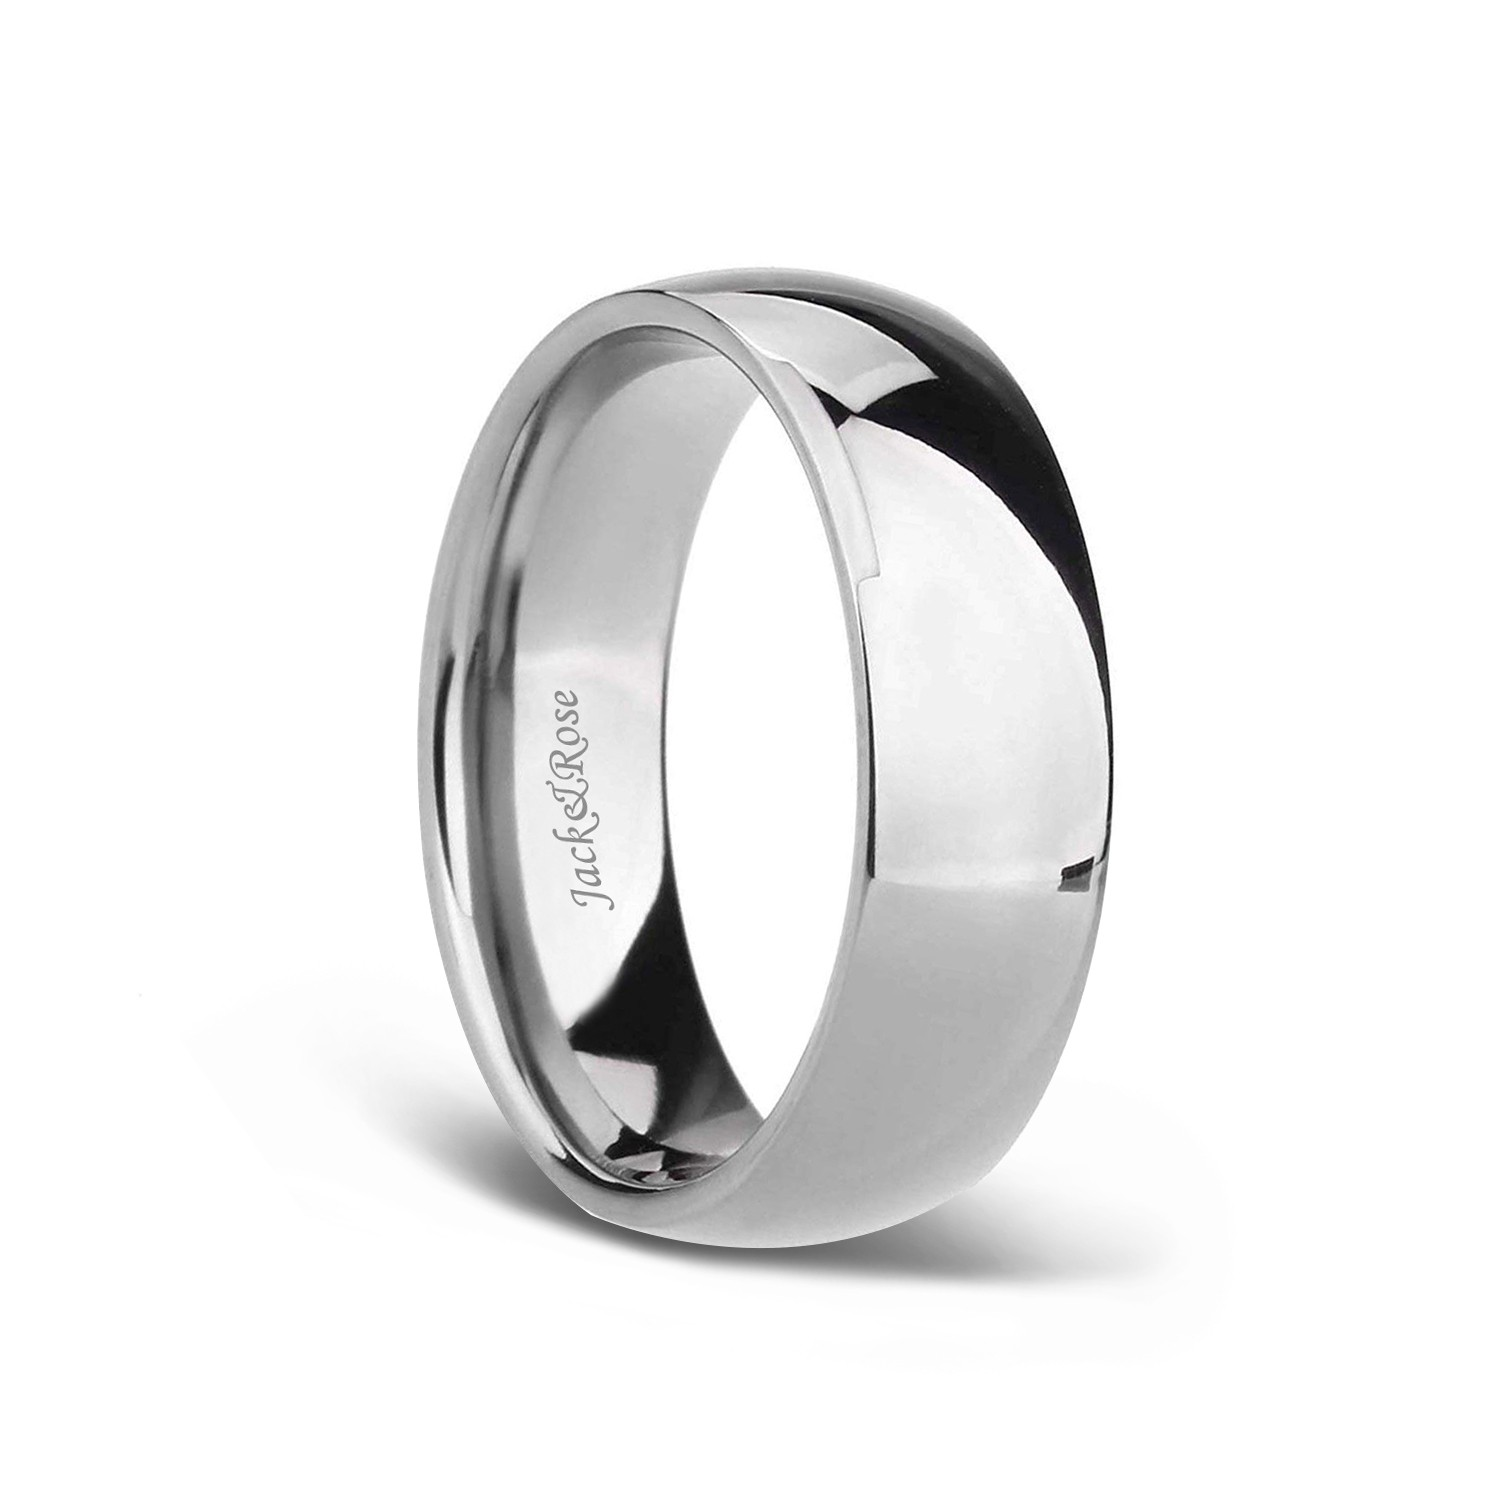 White Plain Titanium Wedding Bands For Men Women With Dome Polished